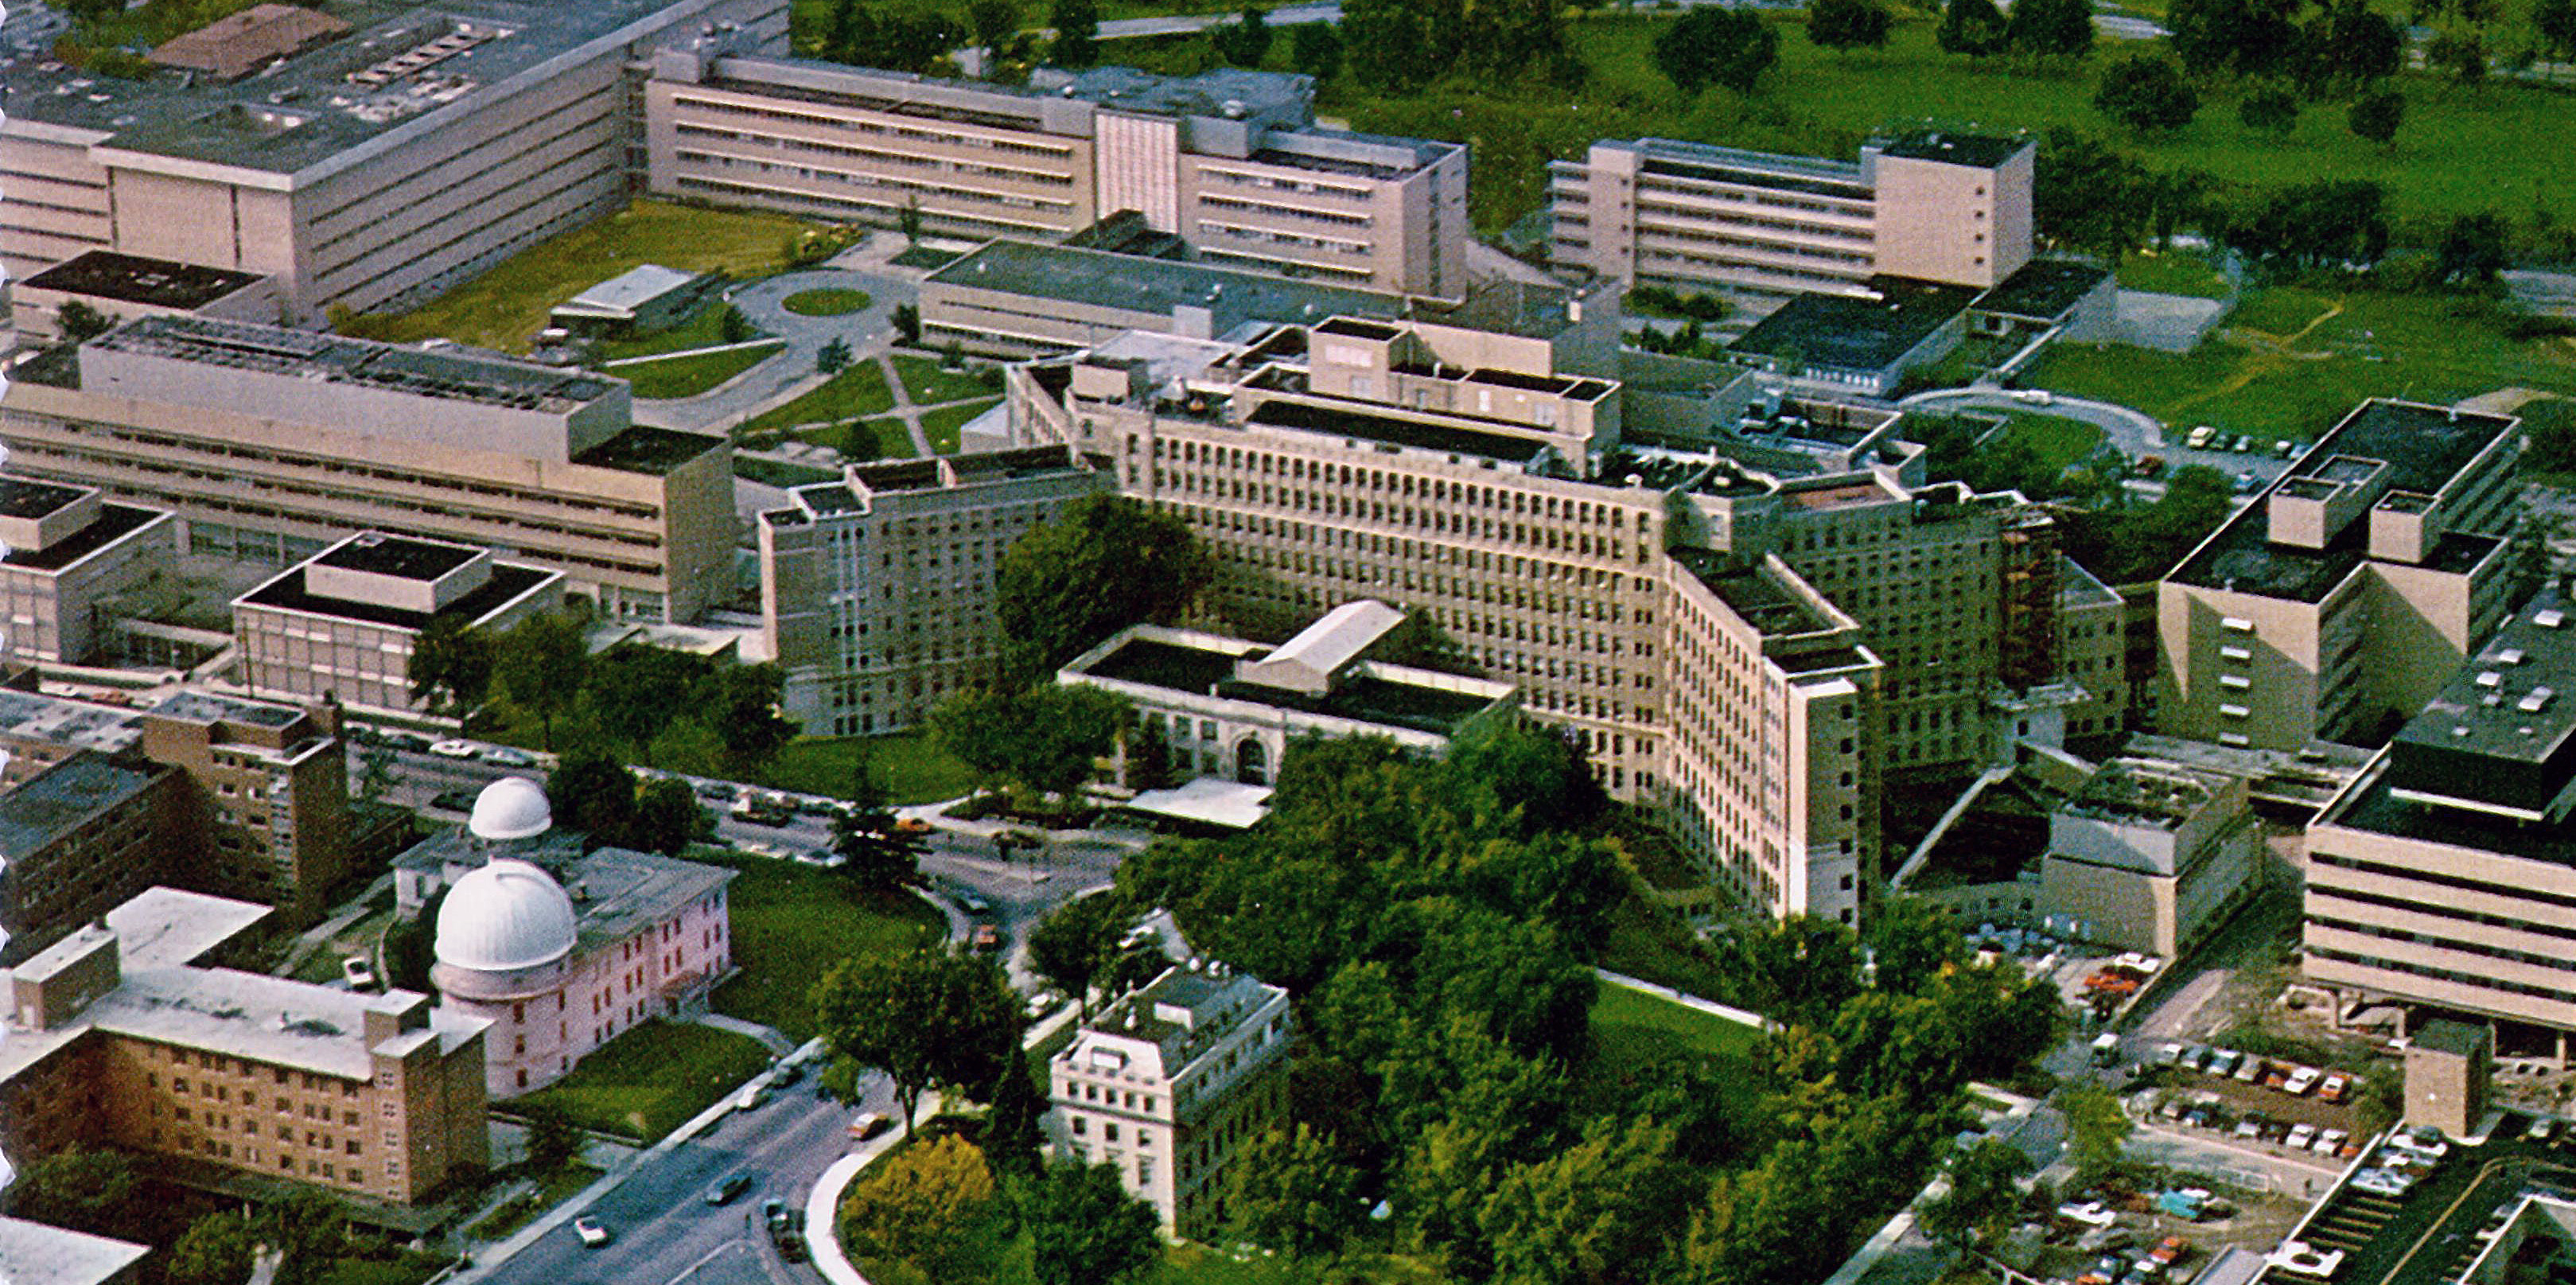 University Of Michigan Medical Center >> University Of Michigan Medical Center Closer View 1960s